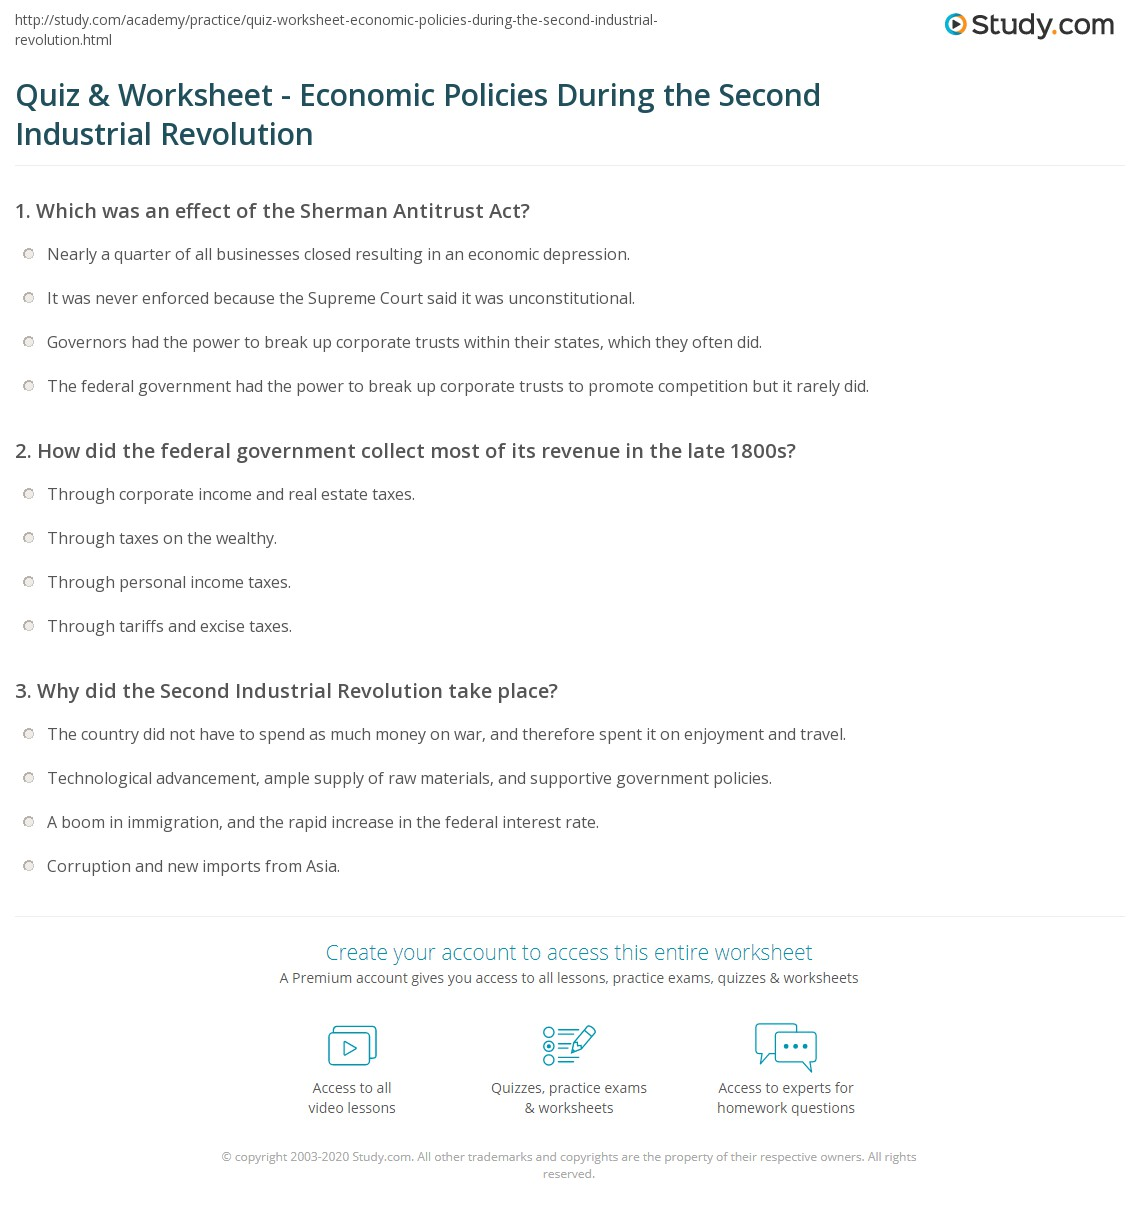 quiz worksheet economic policies during the second industrial revolution. Black Bedroom Furniture Sets. Home Design Ideas